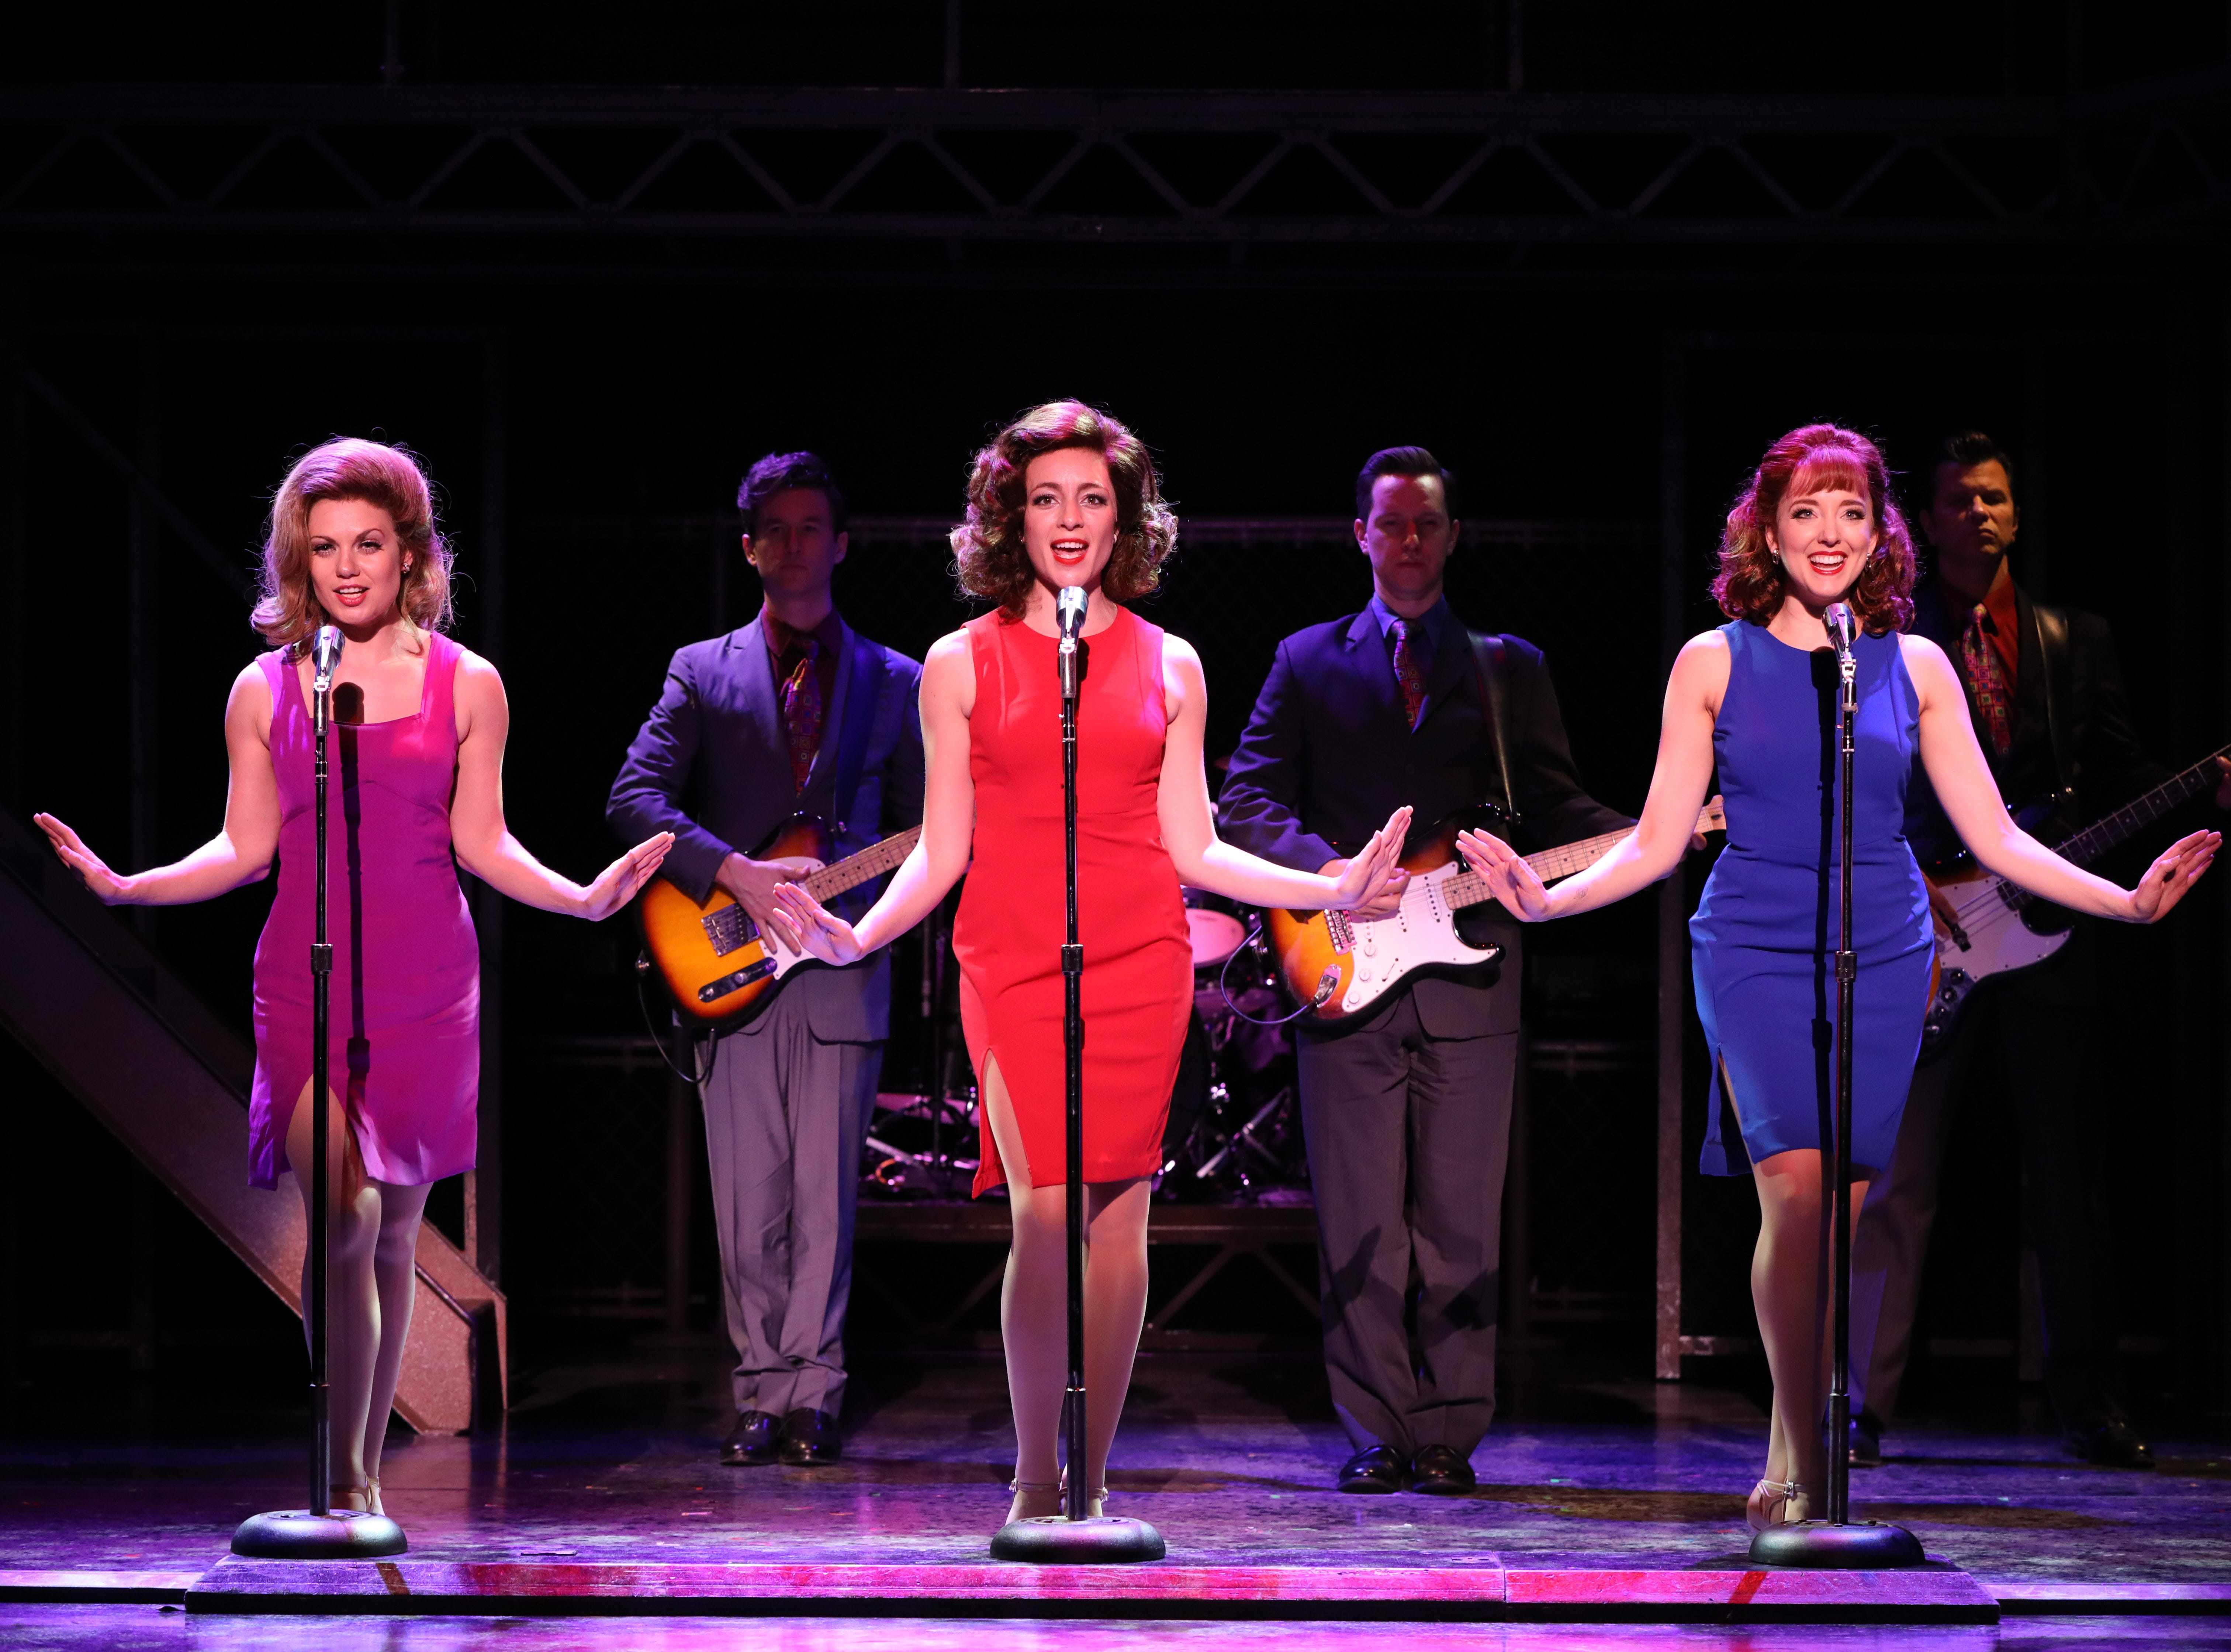 """Ashley Bruce, Chloe Tiso and Jessica Wockenfuss, from left in foreground, and : Guitars (l to r): Wade Dooley, Kevin Patrick Martin and Todd DuBail, from left in background, in """"Jersey Boys."""""""